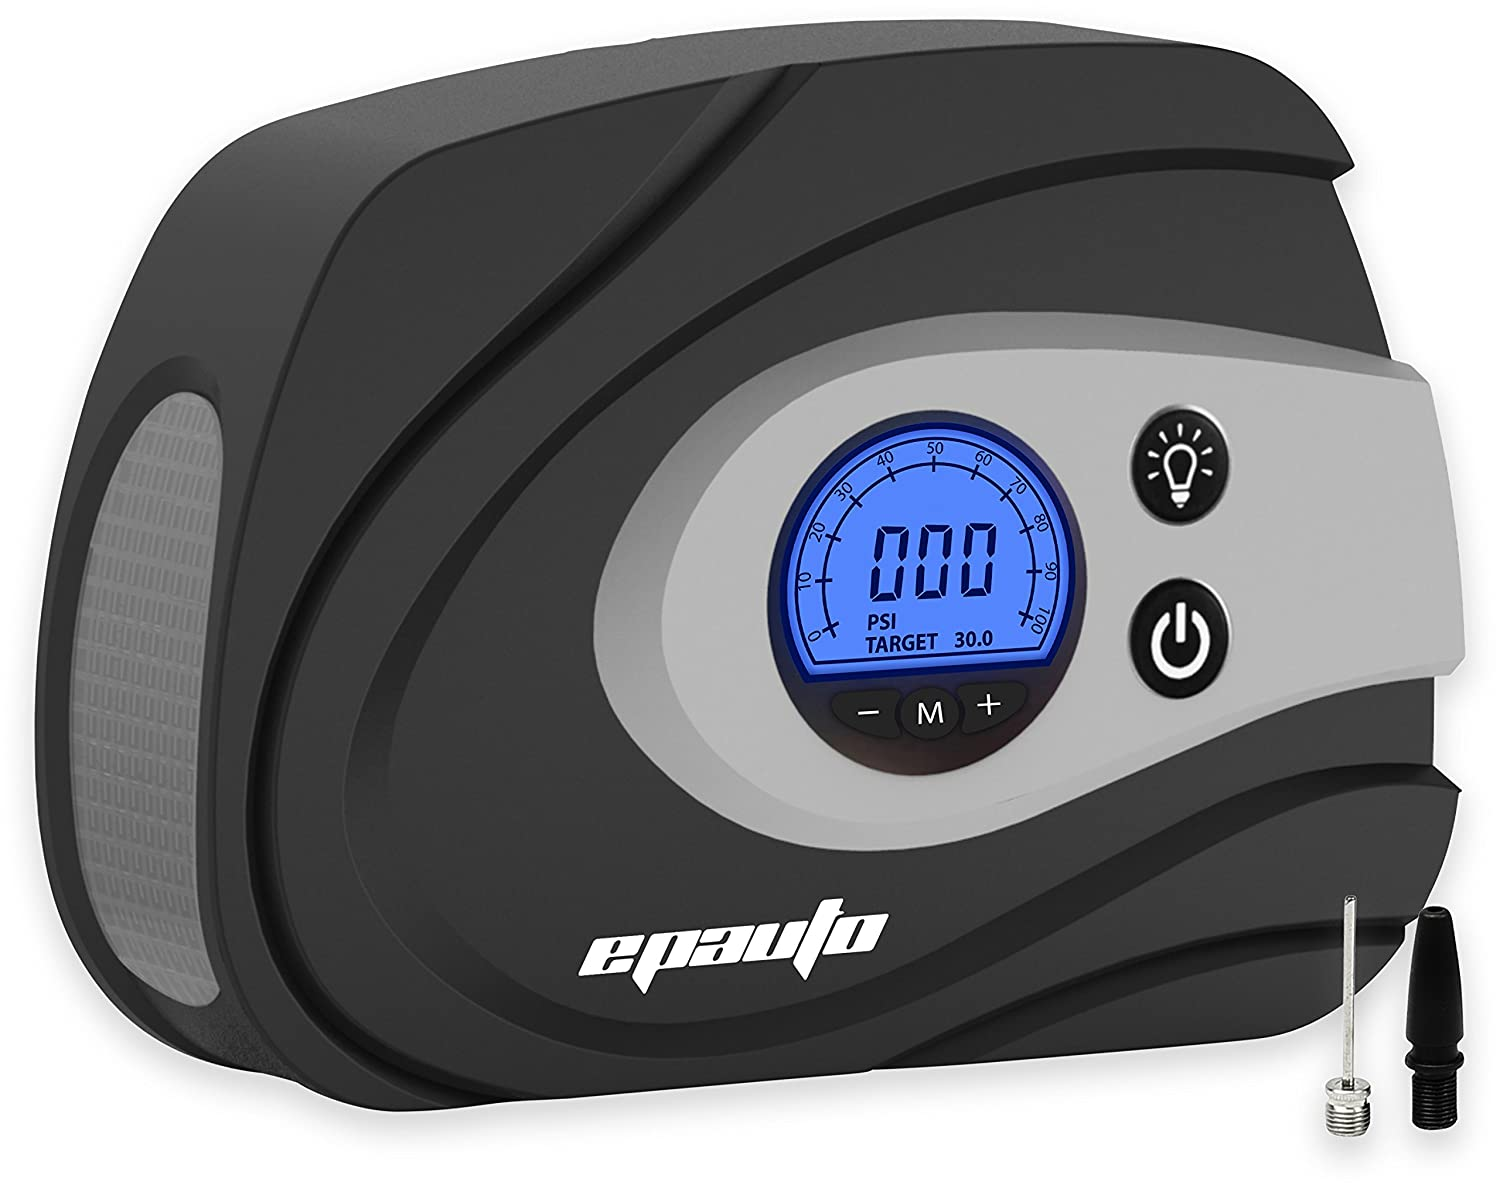 EPAuto 12V DC Auto Portable Air Compressor